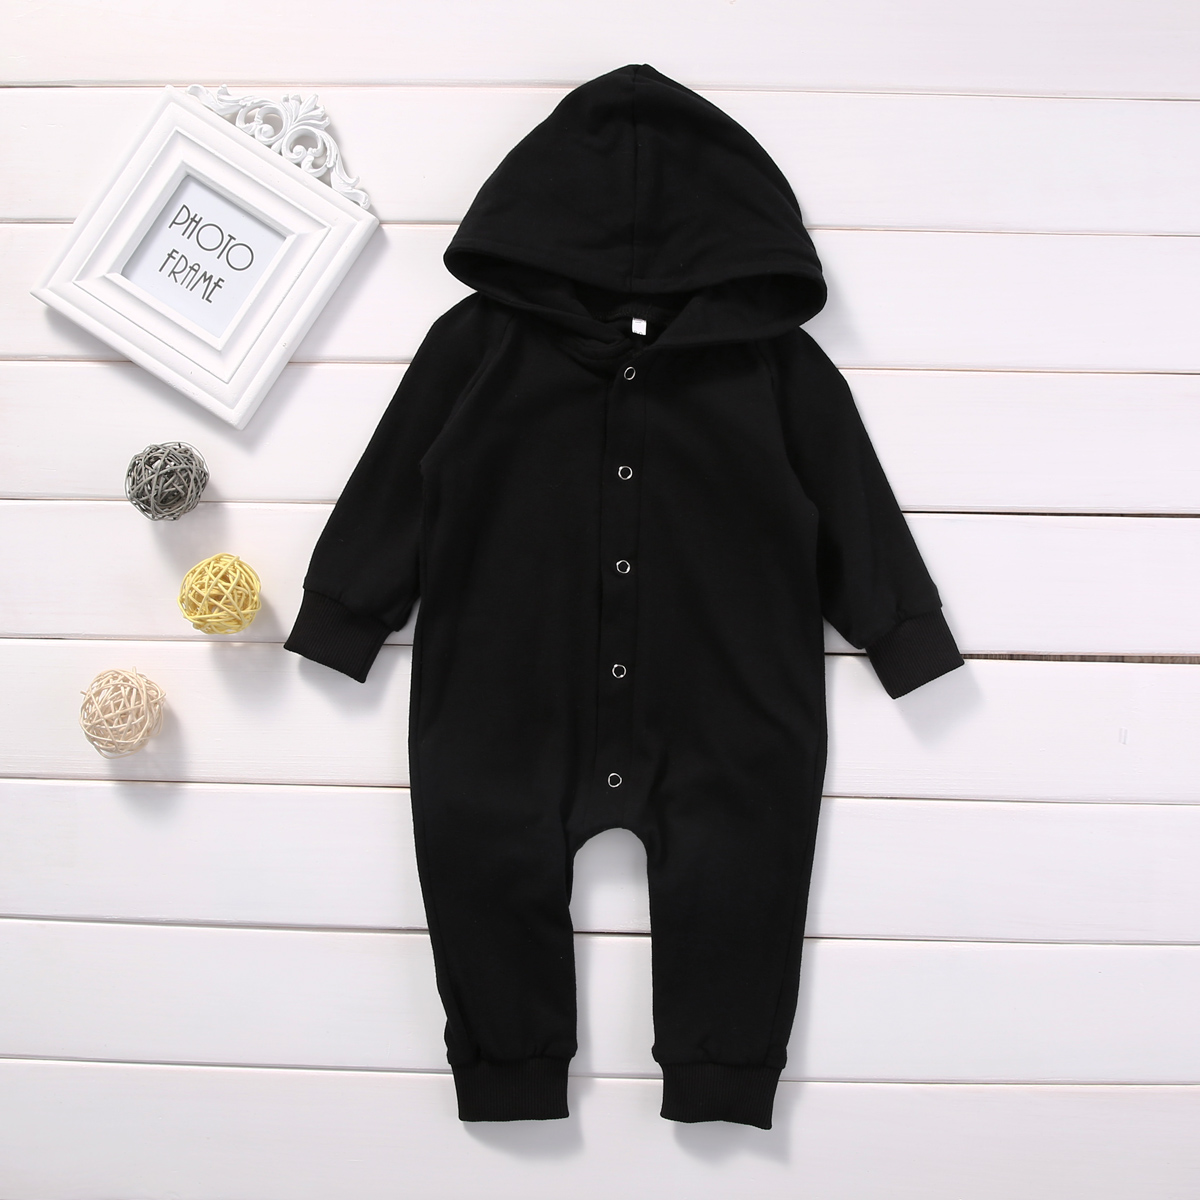 2017 Hot Newborn Infant Warm Baby Boy Girl Clothes Cotton Long Sleeve Hooded Romper Jumpsuit One Pieces Outfit Tracksuit 0-24M newborn infant baby girls boys rompers long sleeve cotton casual romper jumpsuit baby boy girl outfit costume